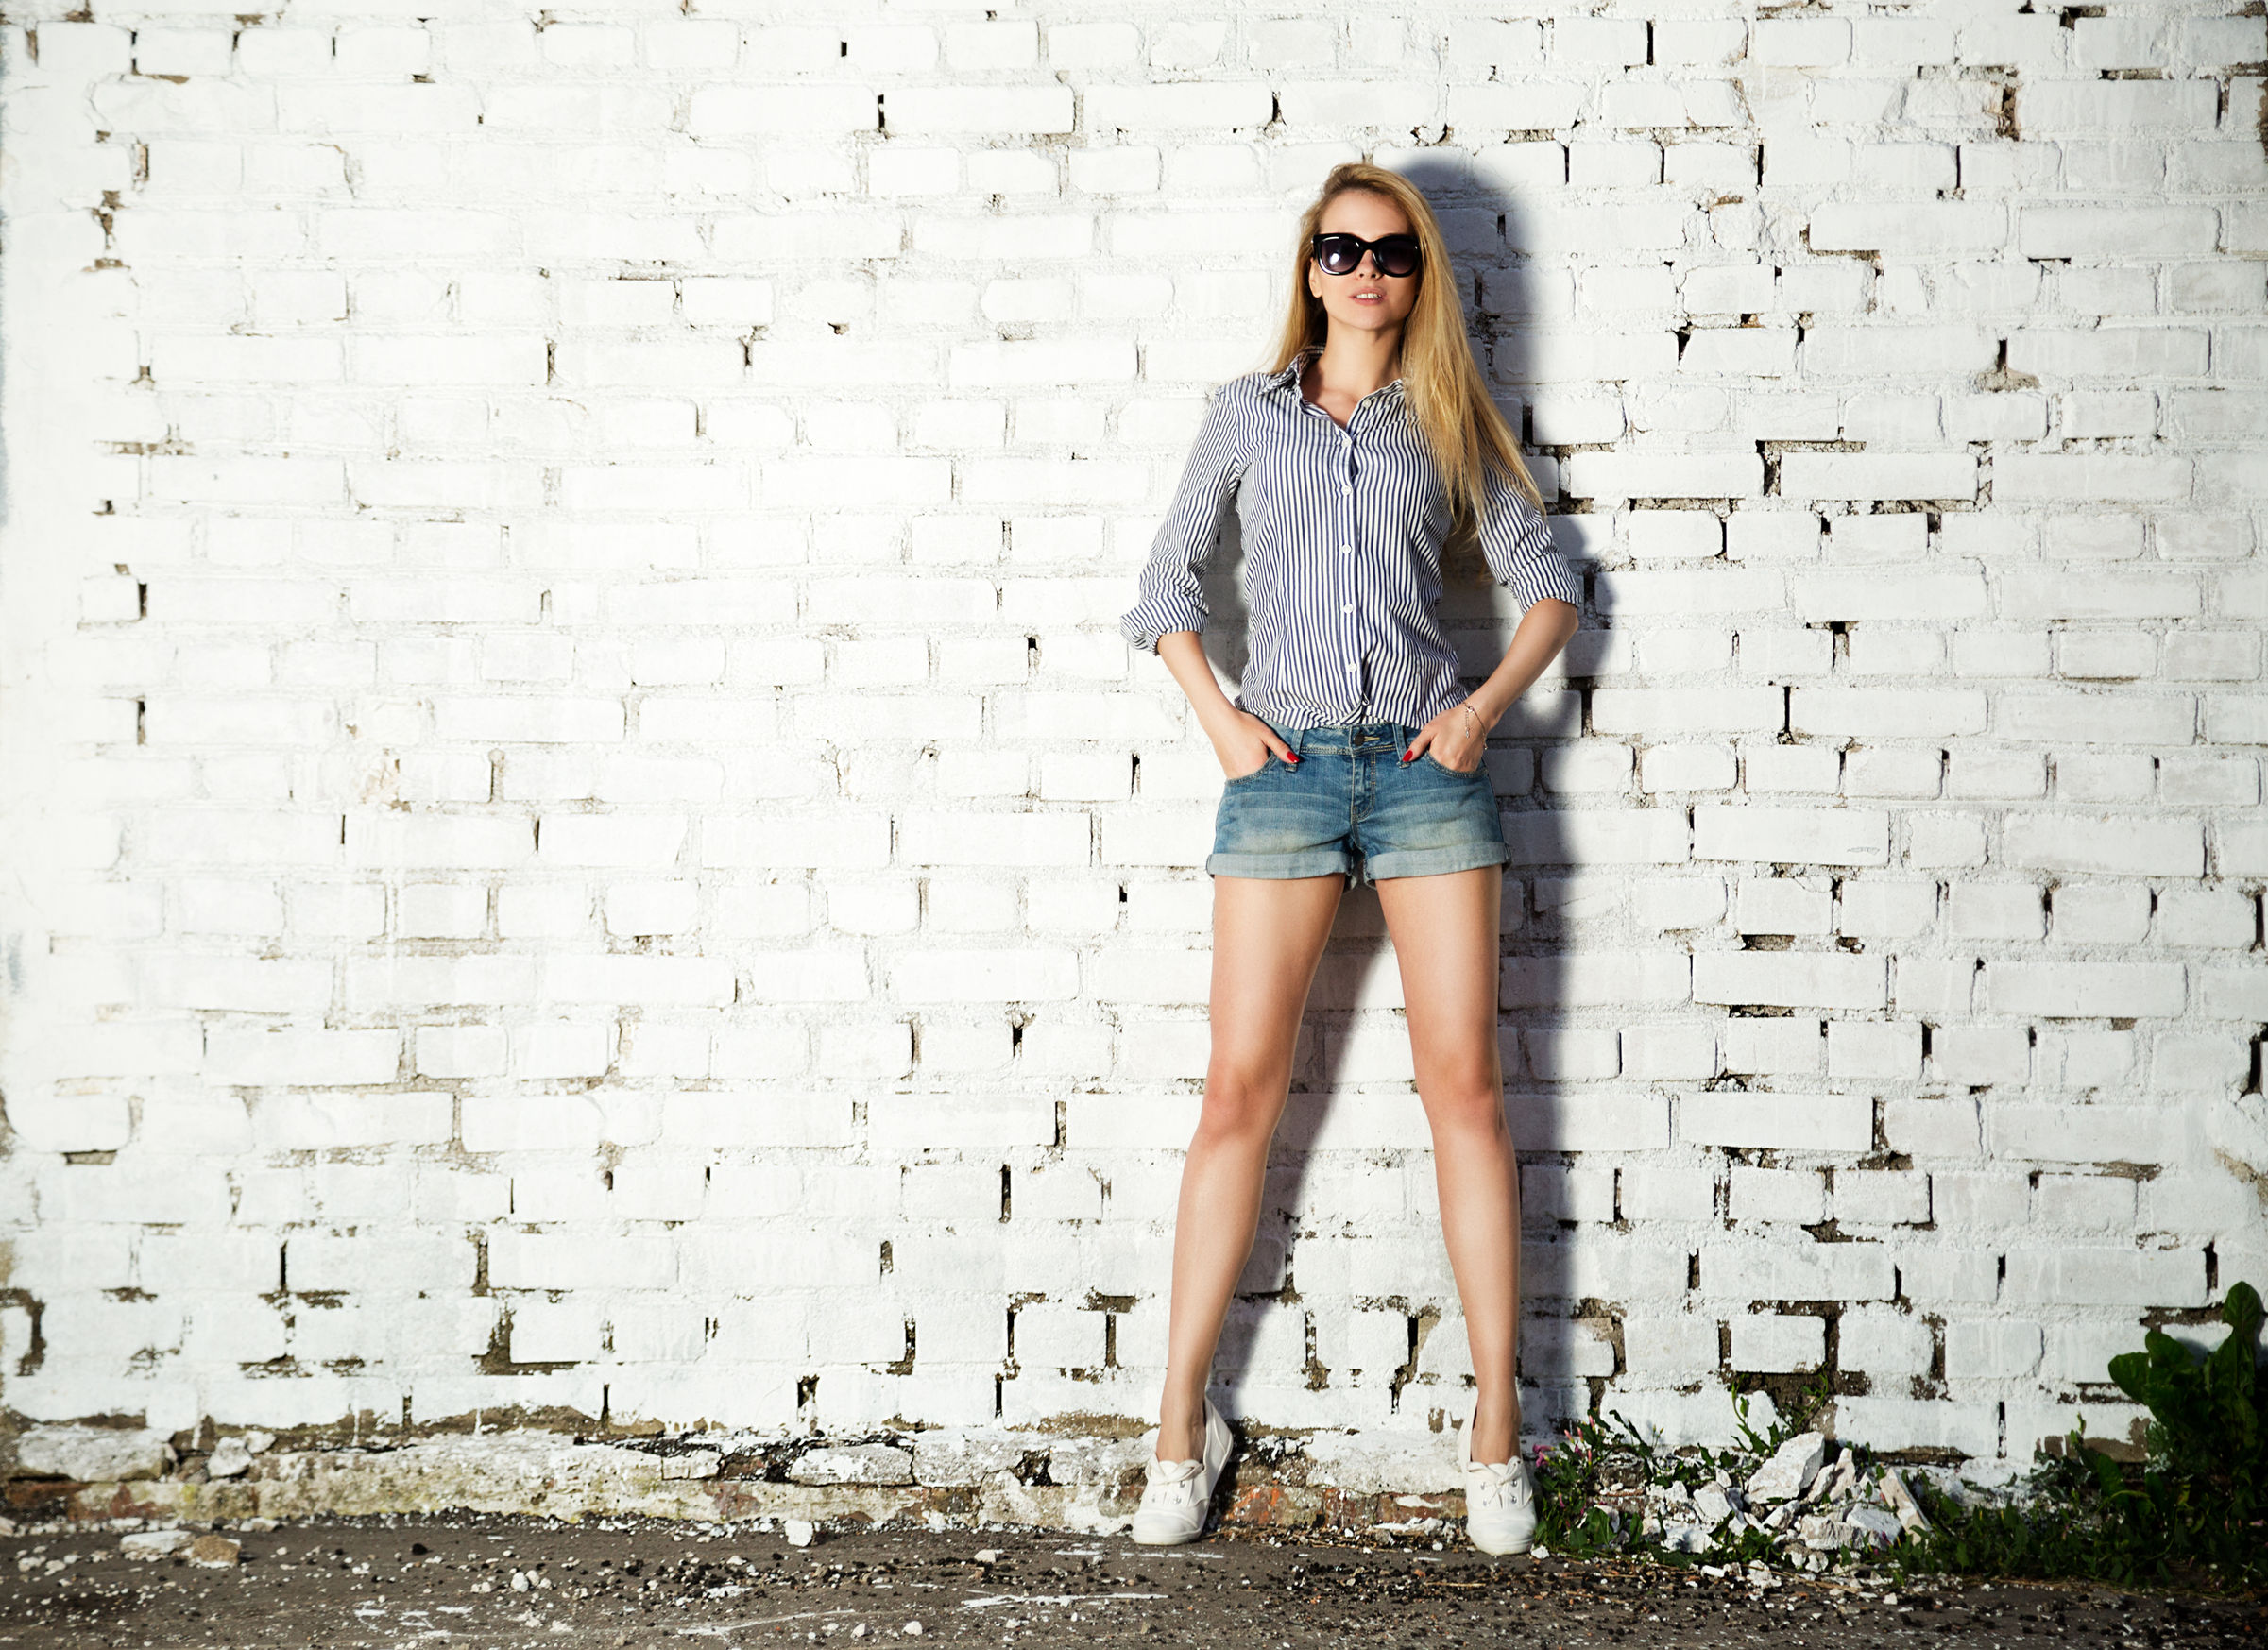 38110443 - full length portrait of trendy hipster girl with hands in pockets on white brick wall background. trendy urban fashion concept. copy space.